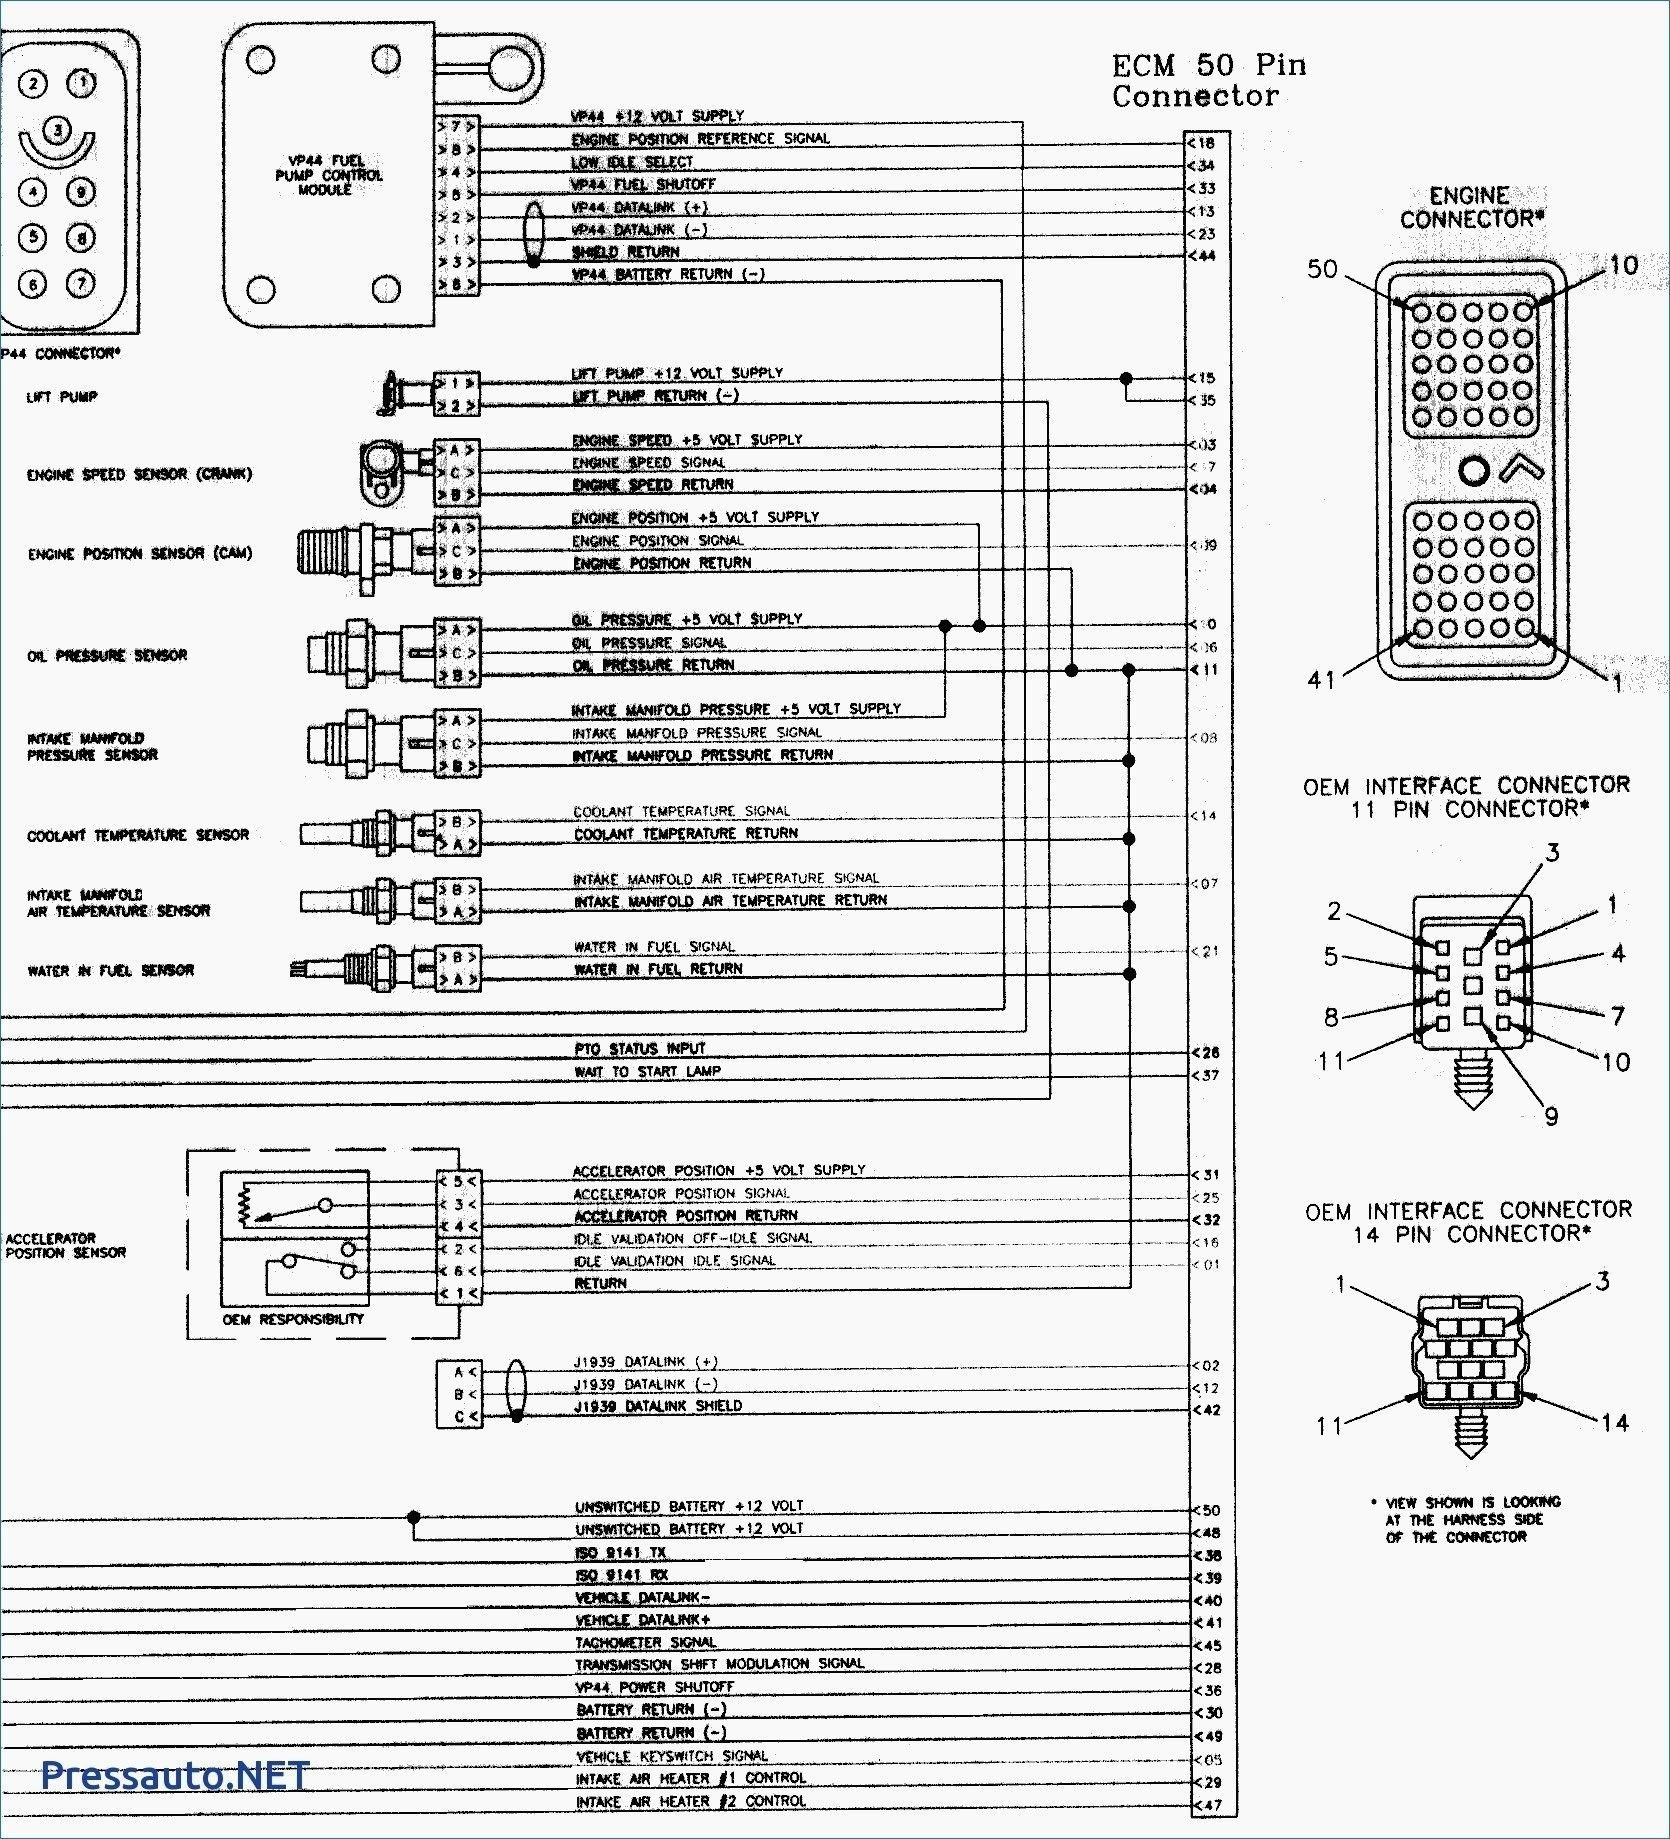 New Wiring Diagram For Dodge Ram Diagram